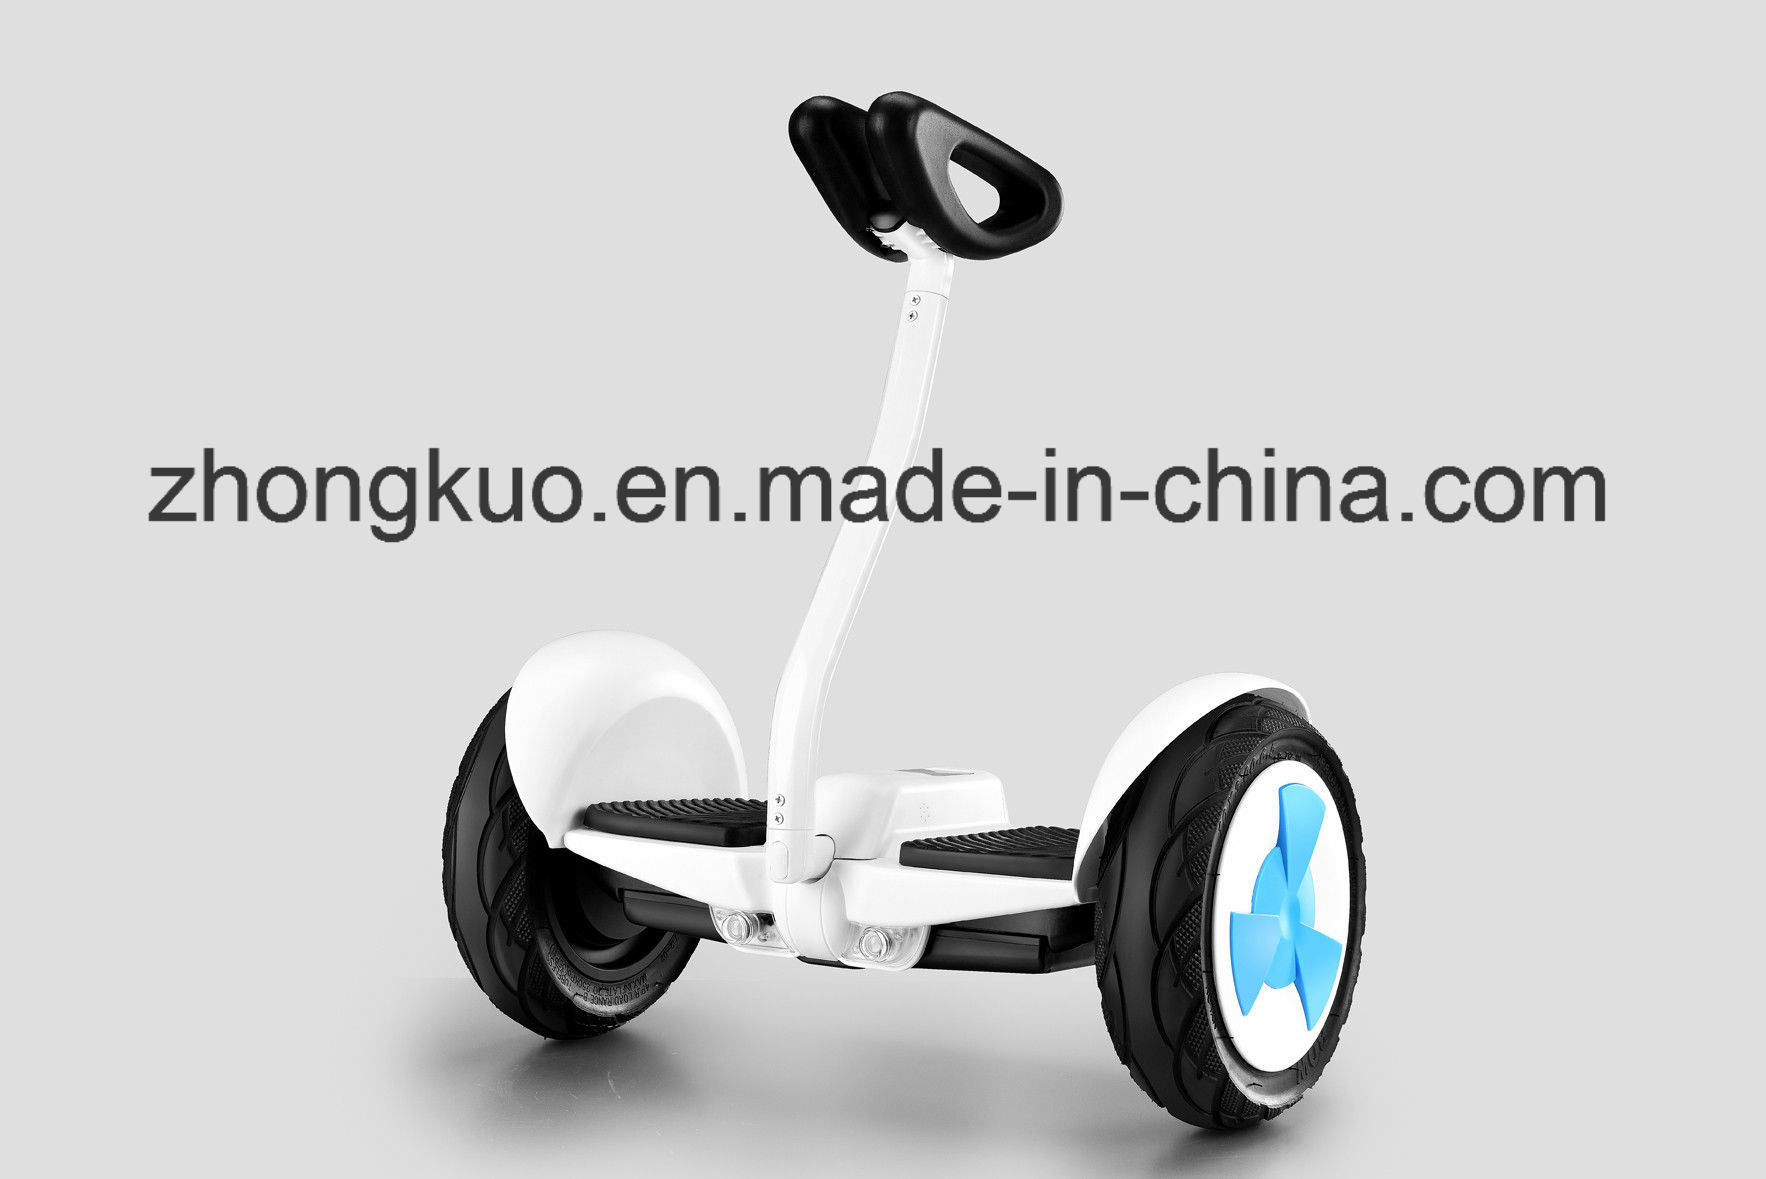 New! Cheap Price Incredible Quality Self Balancing Scooter Mini Electric Skateboard Hoverboard